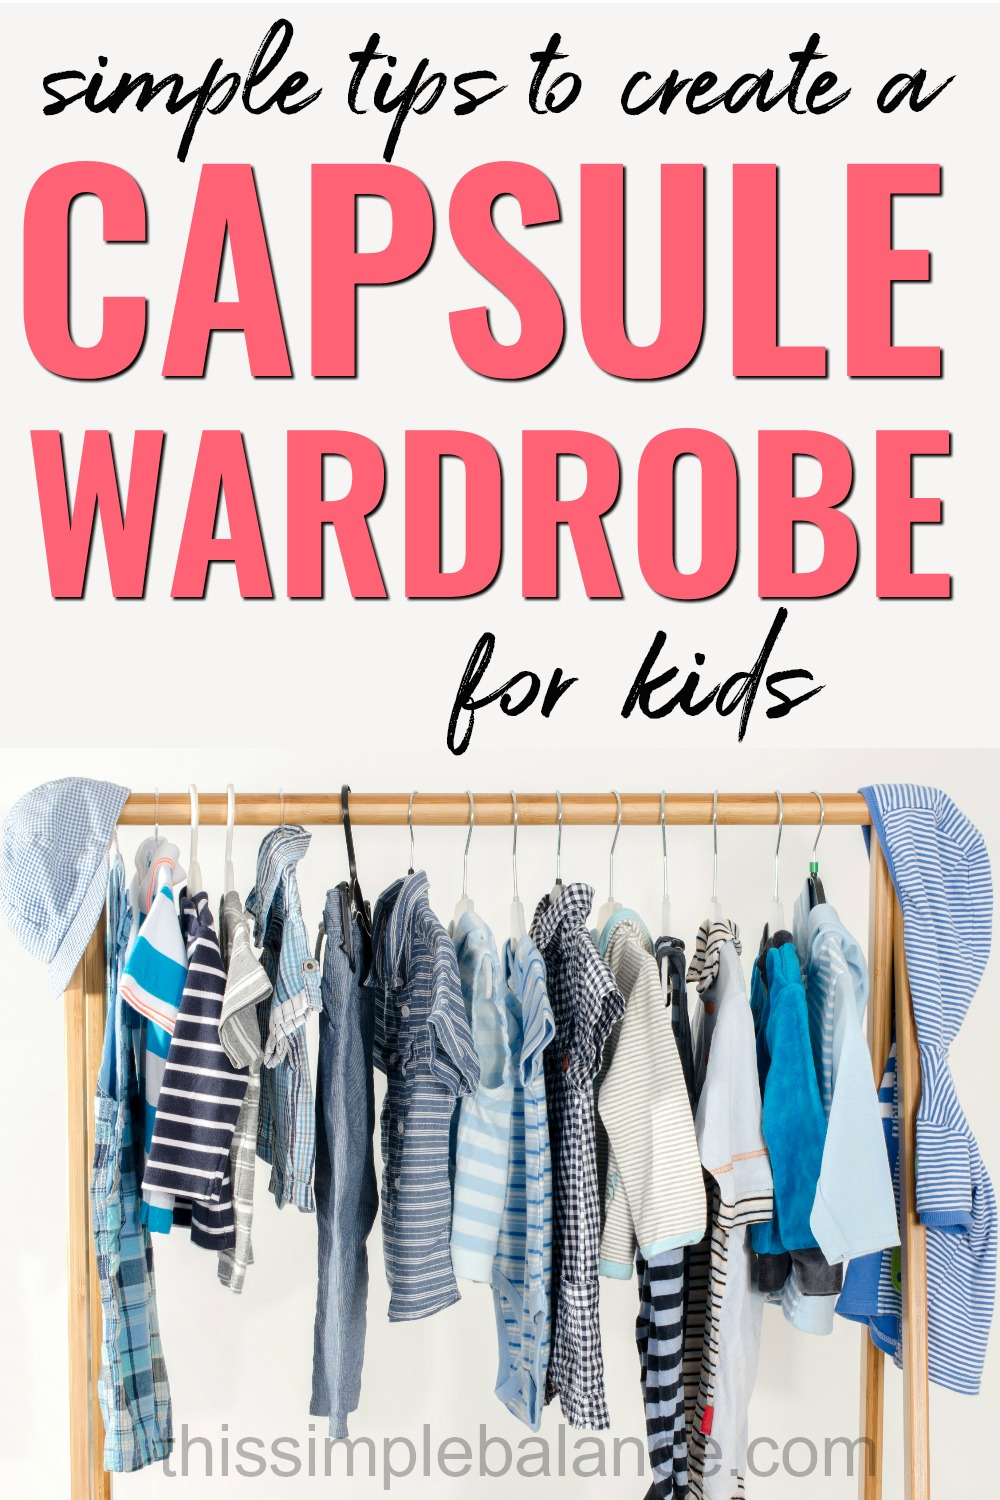 Simple Tips to Build a Capsule Wardrobe for Kids (on a tight budget) #minimalismonalowincome #minimalist